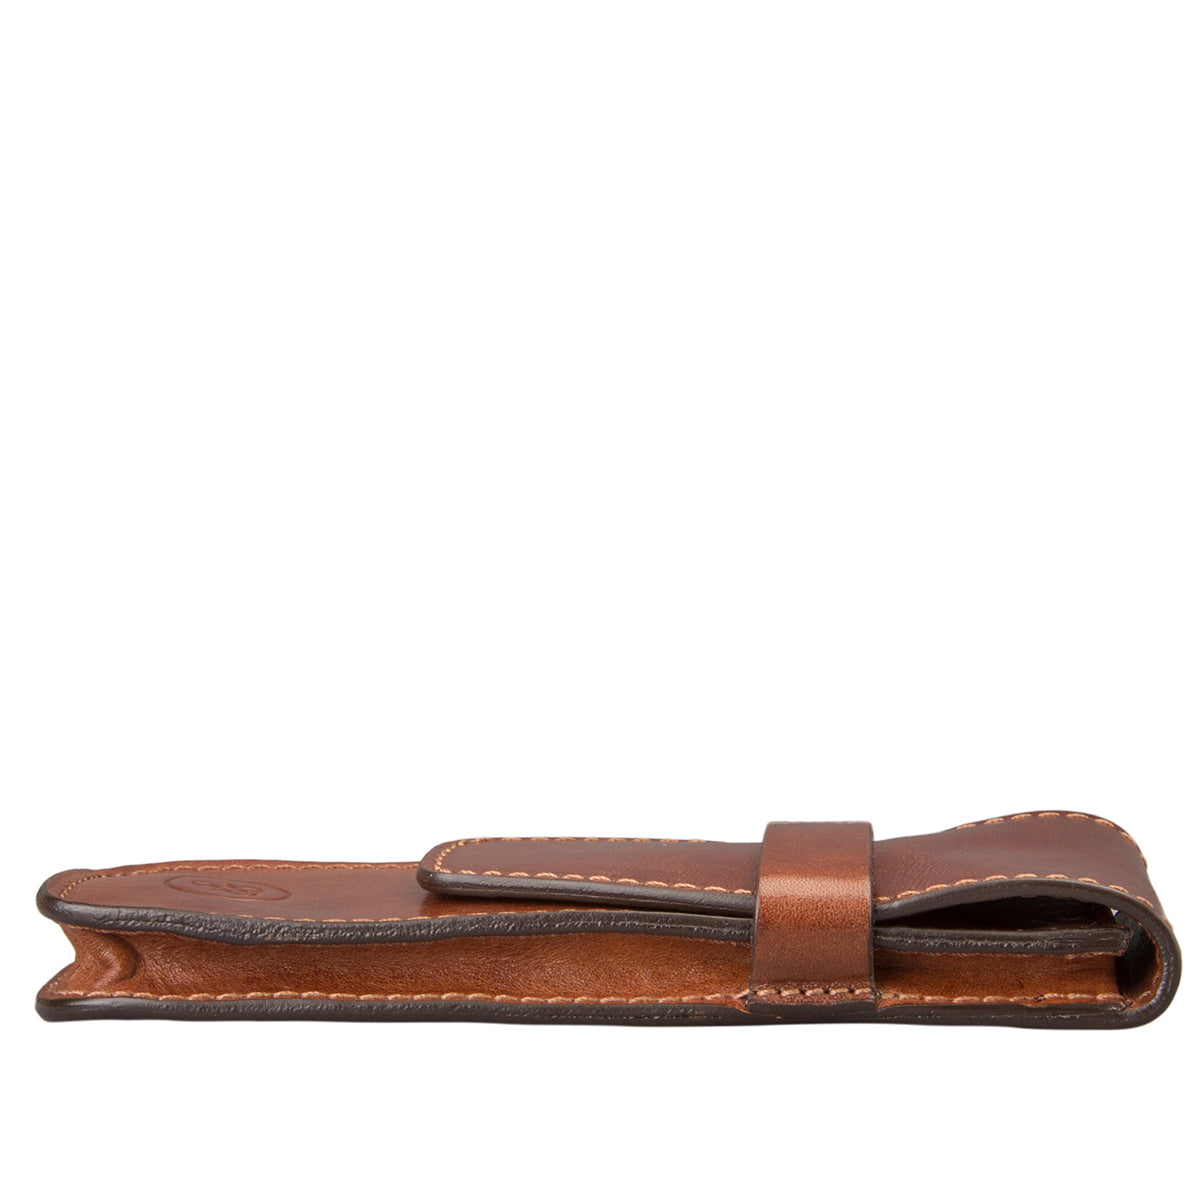 Image 3 of the 'Pienza' Chestnut Veg-Tanned Leather Pen Case